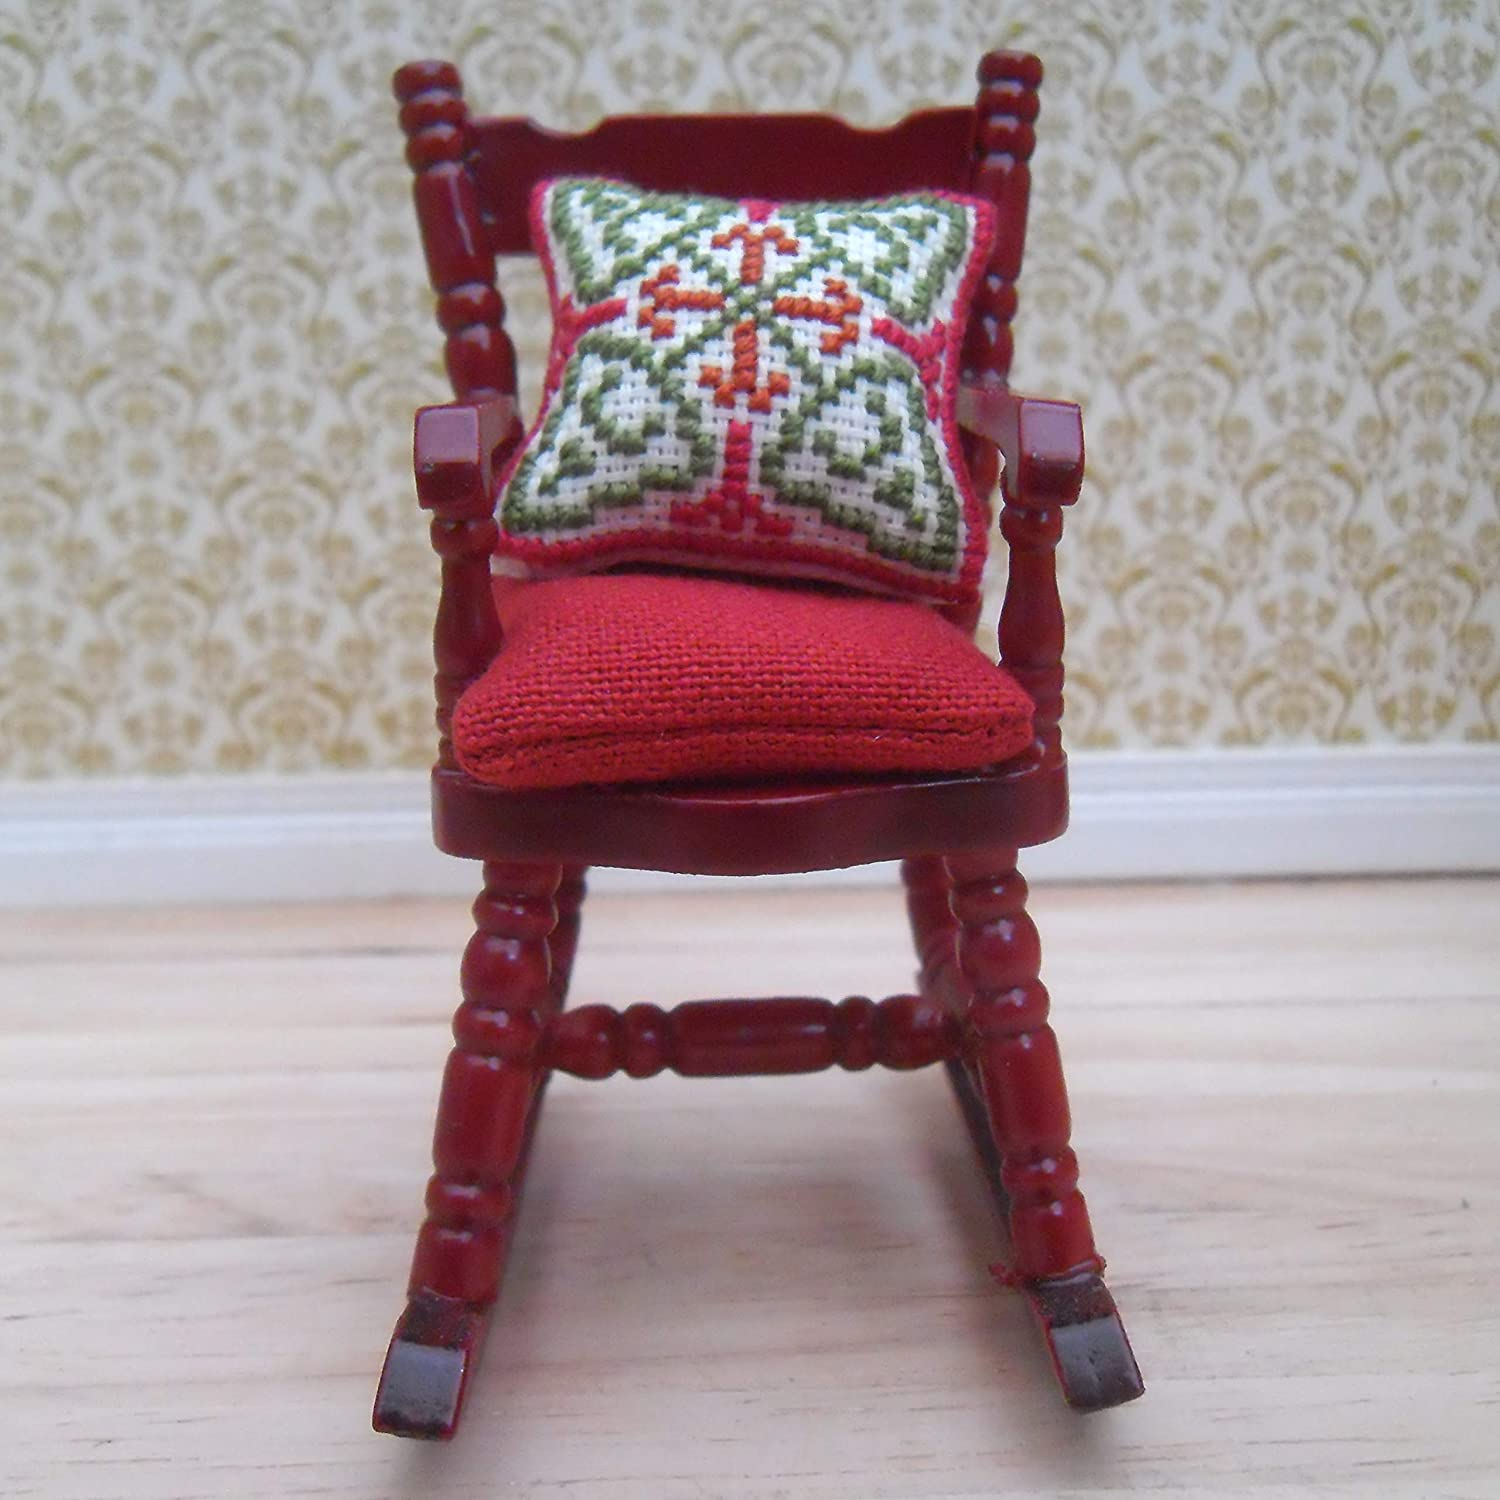 1//12th Scale Dolls House Rocking Chair with Hand Embroidered Geometric Design Cushion /& Red Seat Pad